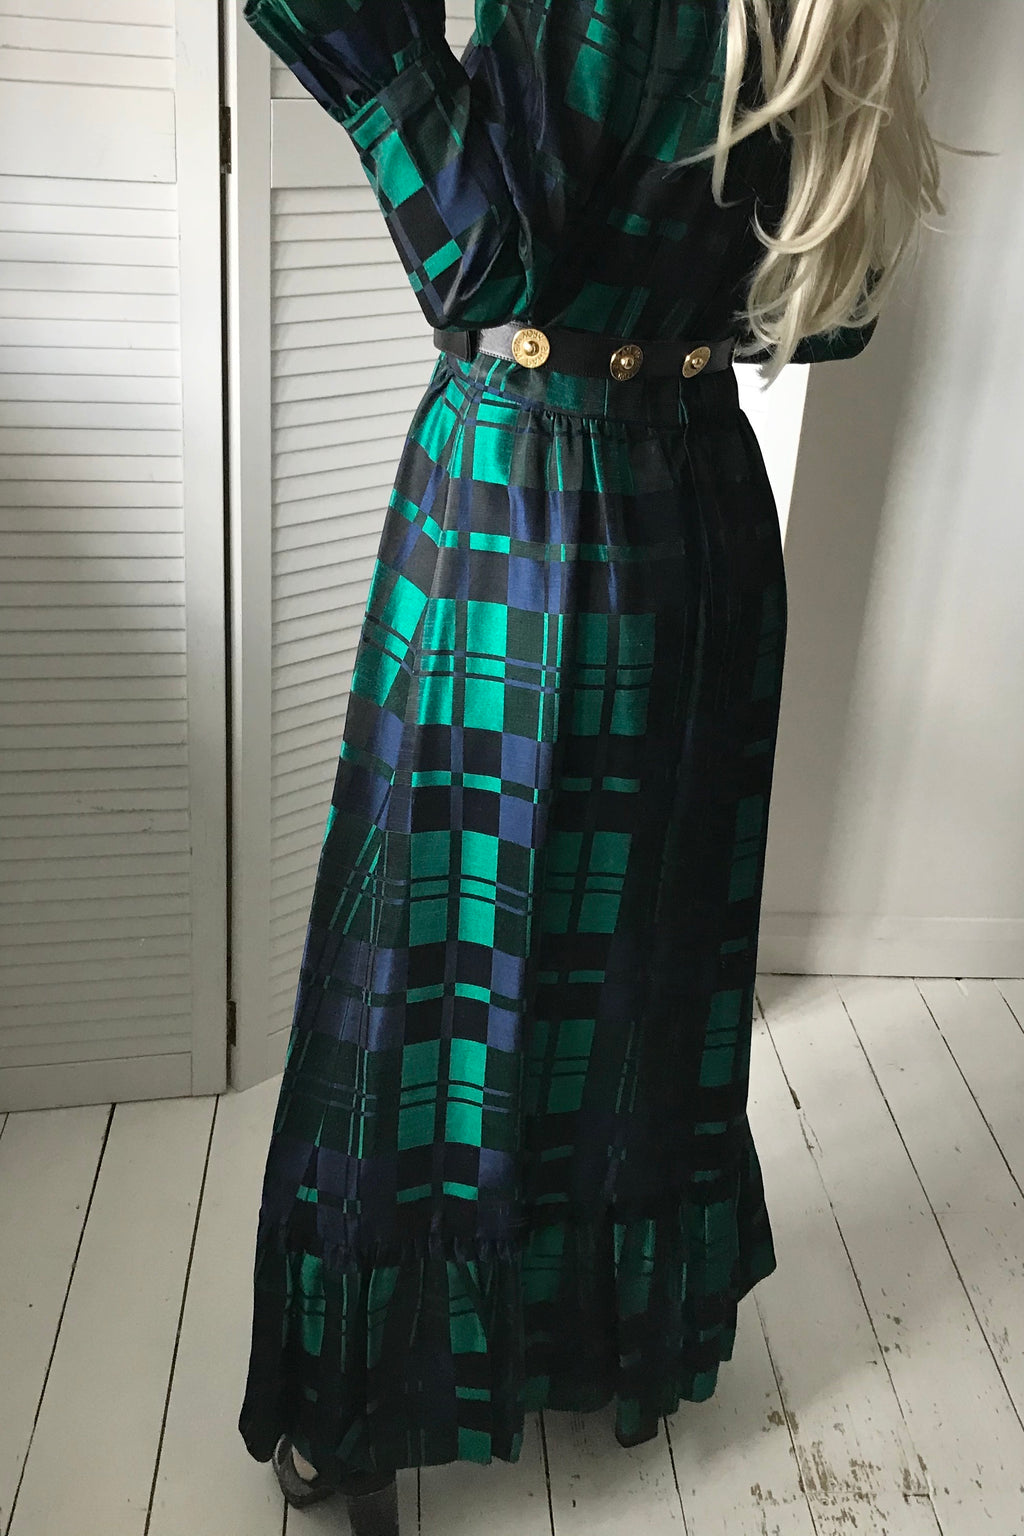 Vintage 70s Long Tartan Checked Emerald Green & Navy Ankle Length Prairie Dress With Ruffle Trim & Beading